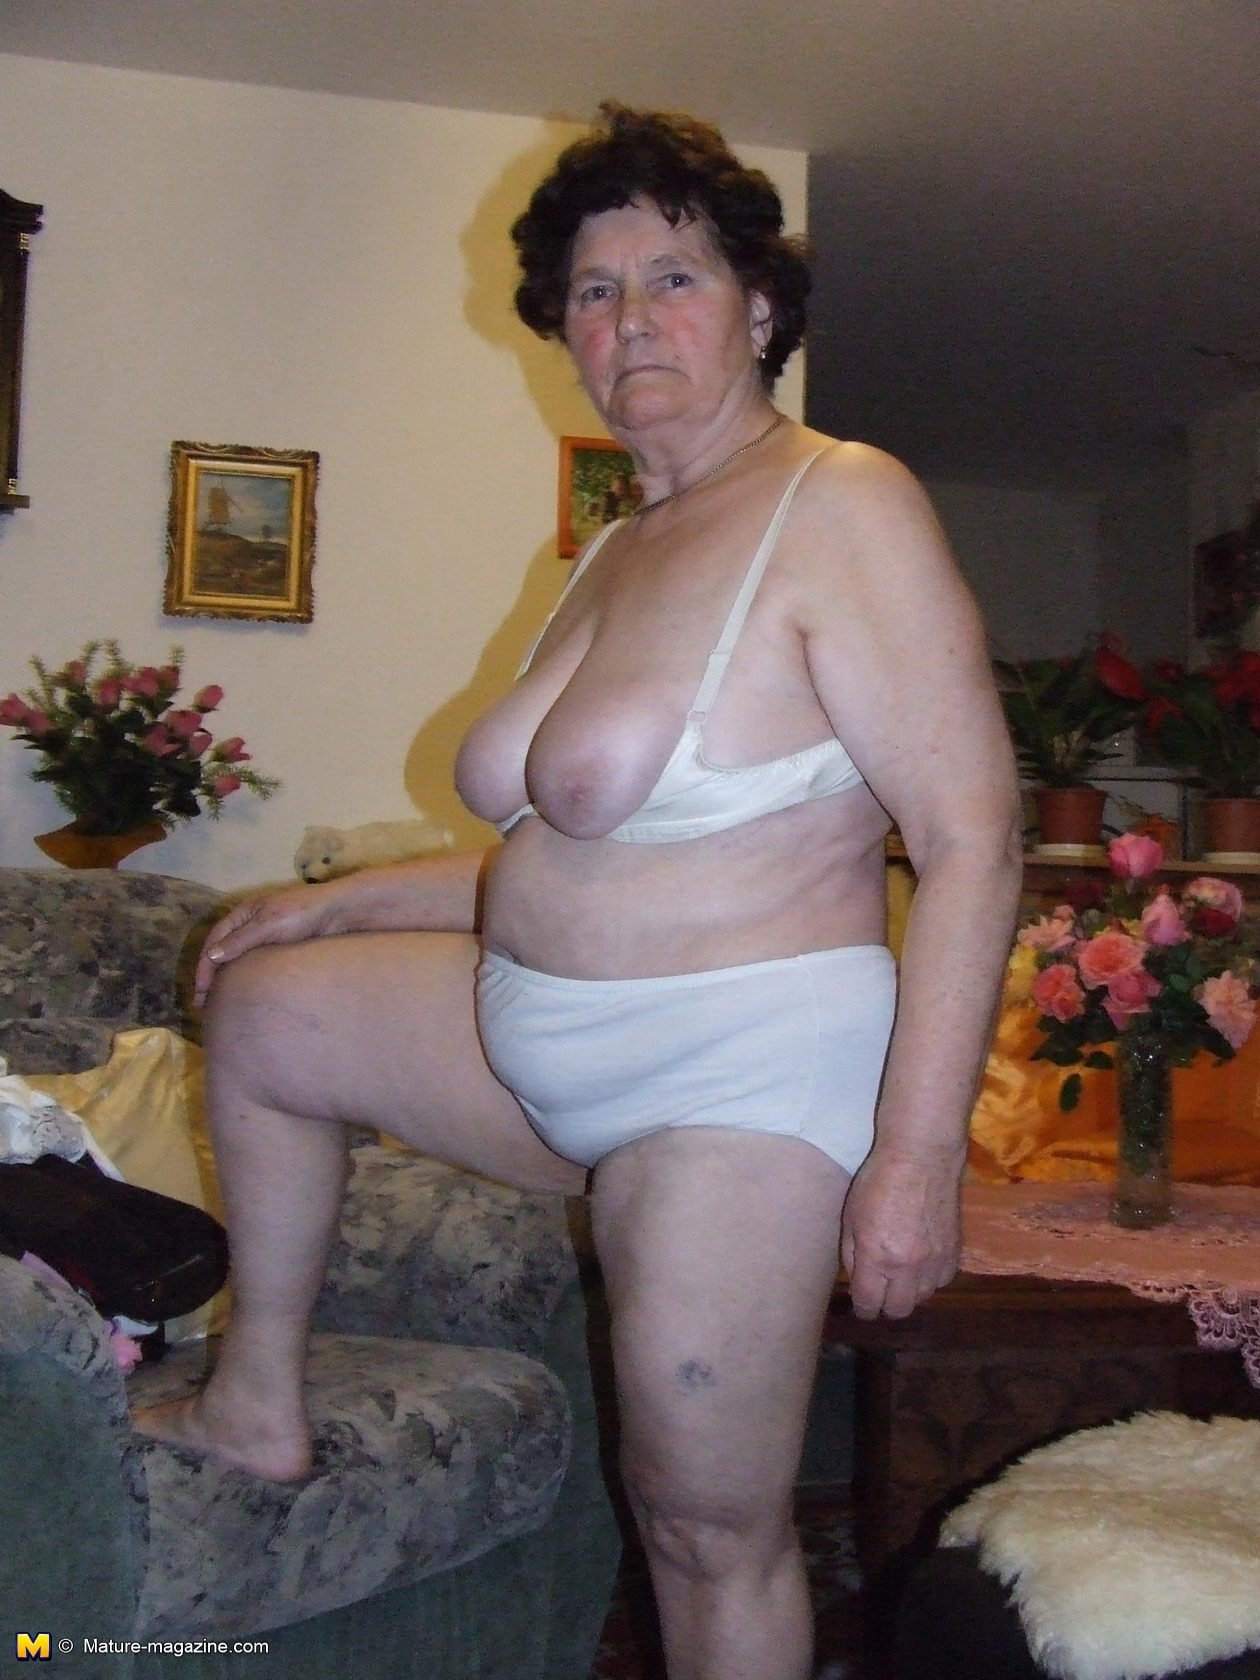 Topless granny photos #1